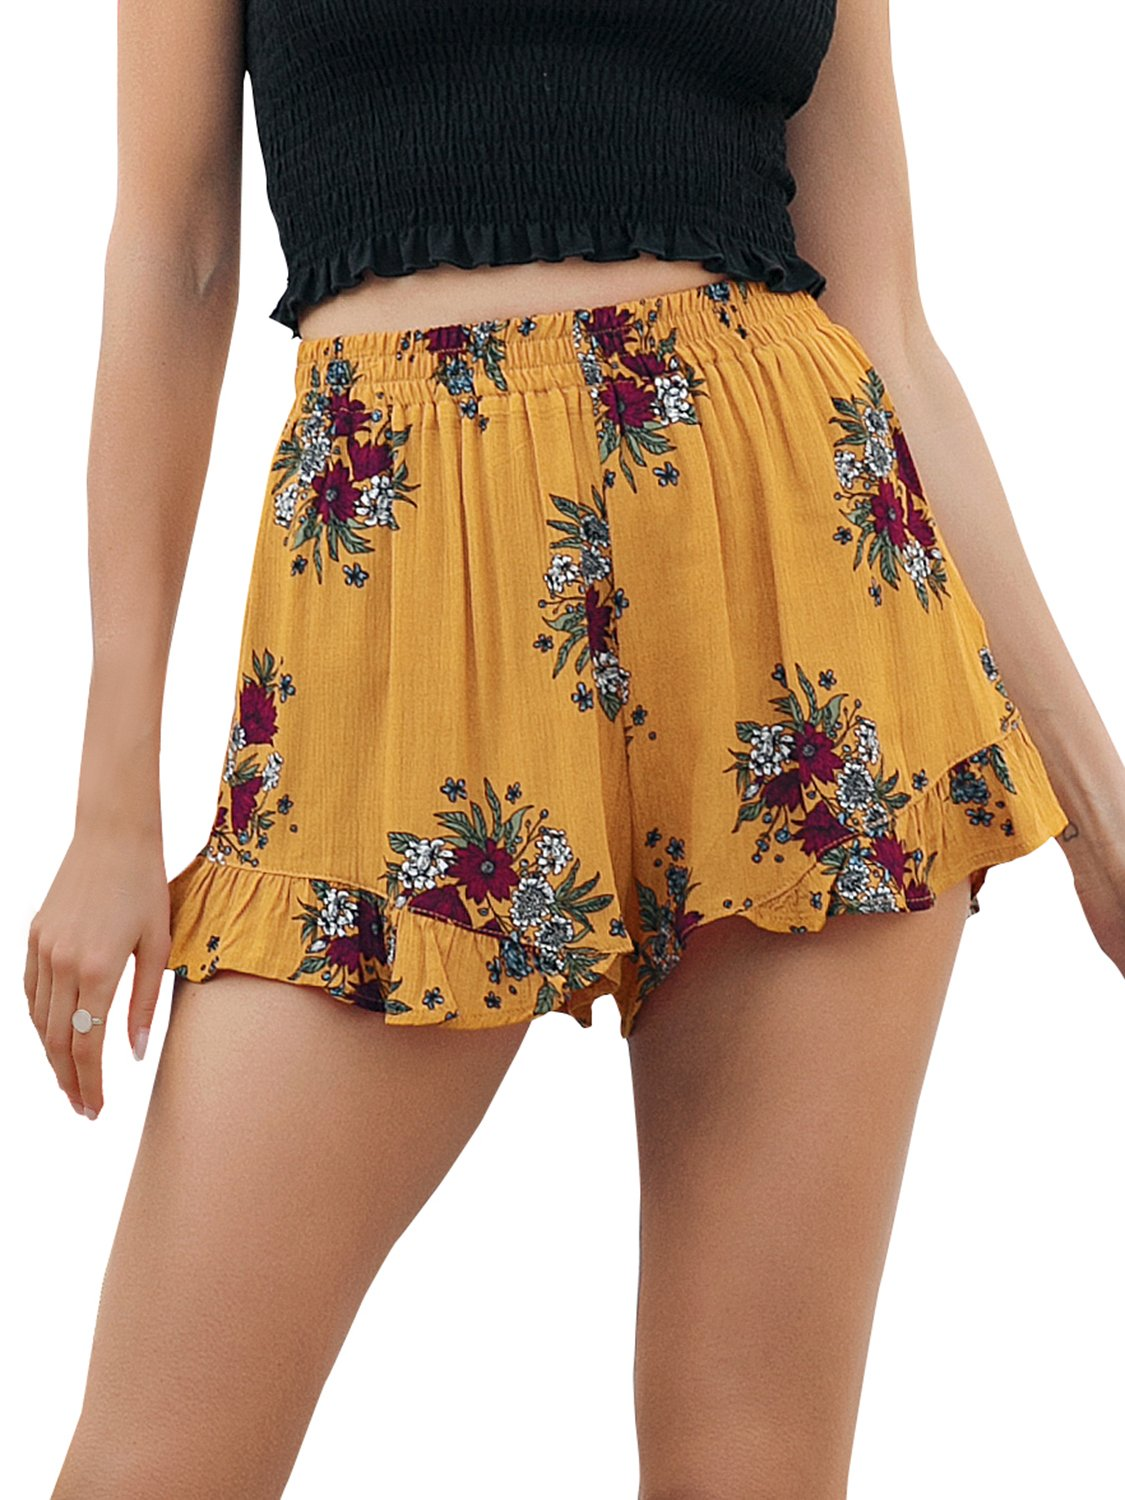 Simplee Women's High Waisted Casual Shorts Summer Boho Floral Print Elastic Shorts Yellow US 8